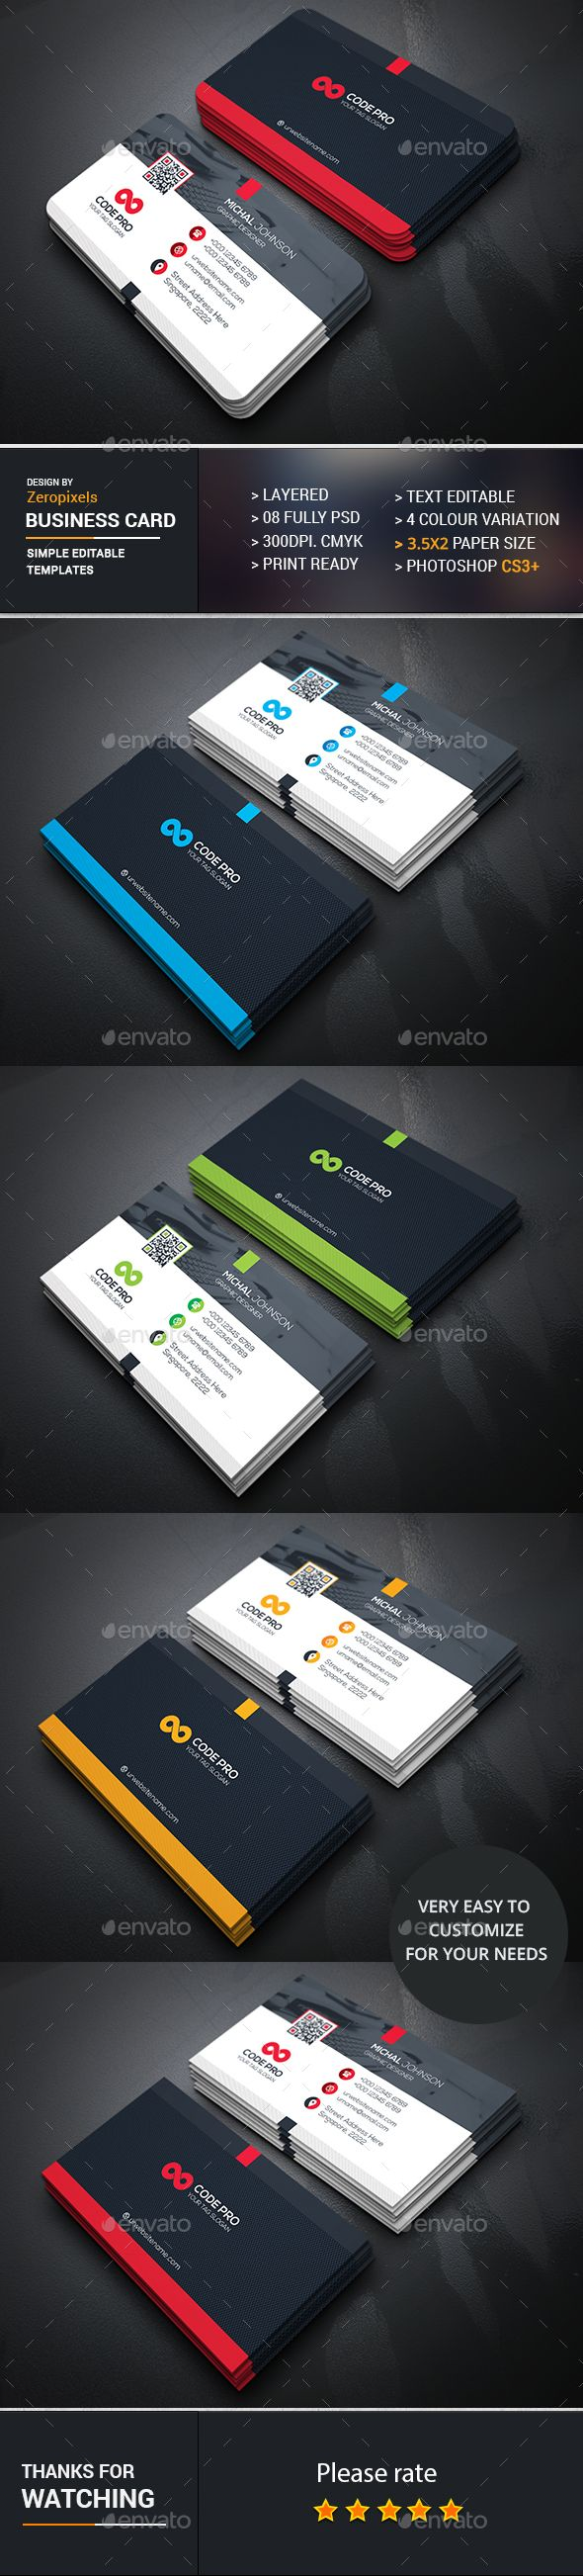 Free business card templates buy business card template most used buy business card template is a file that helps you design attractive compelling and professional document documents the document contains content and reheart Images